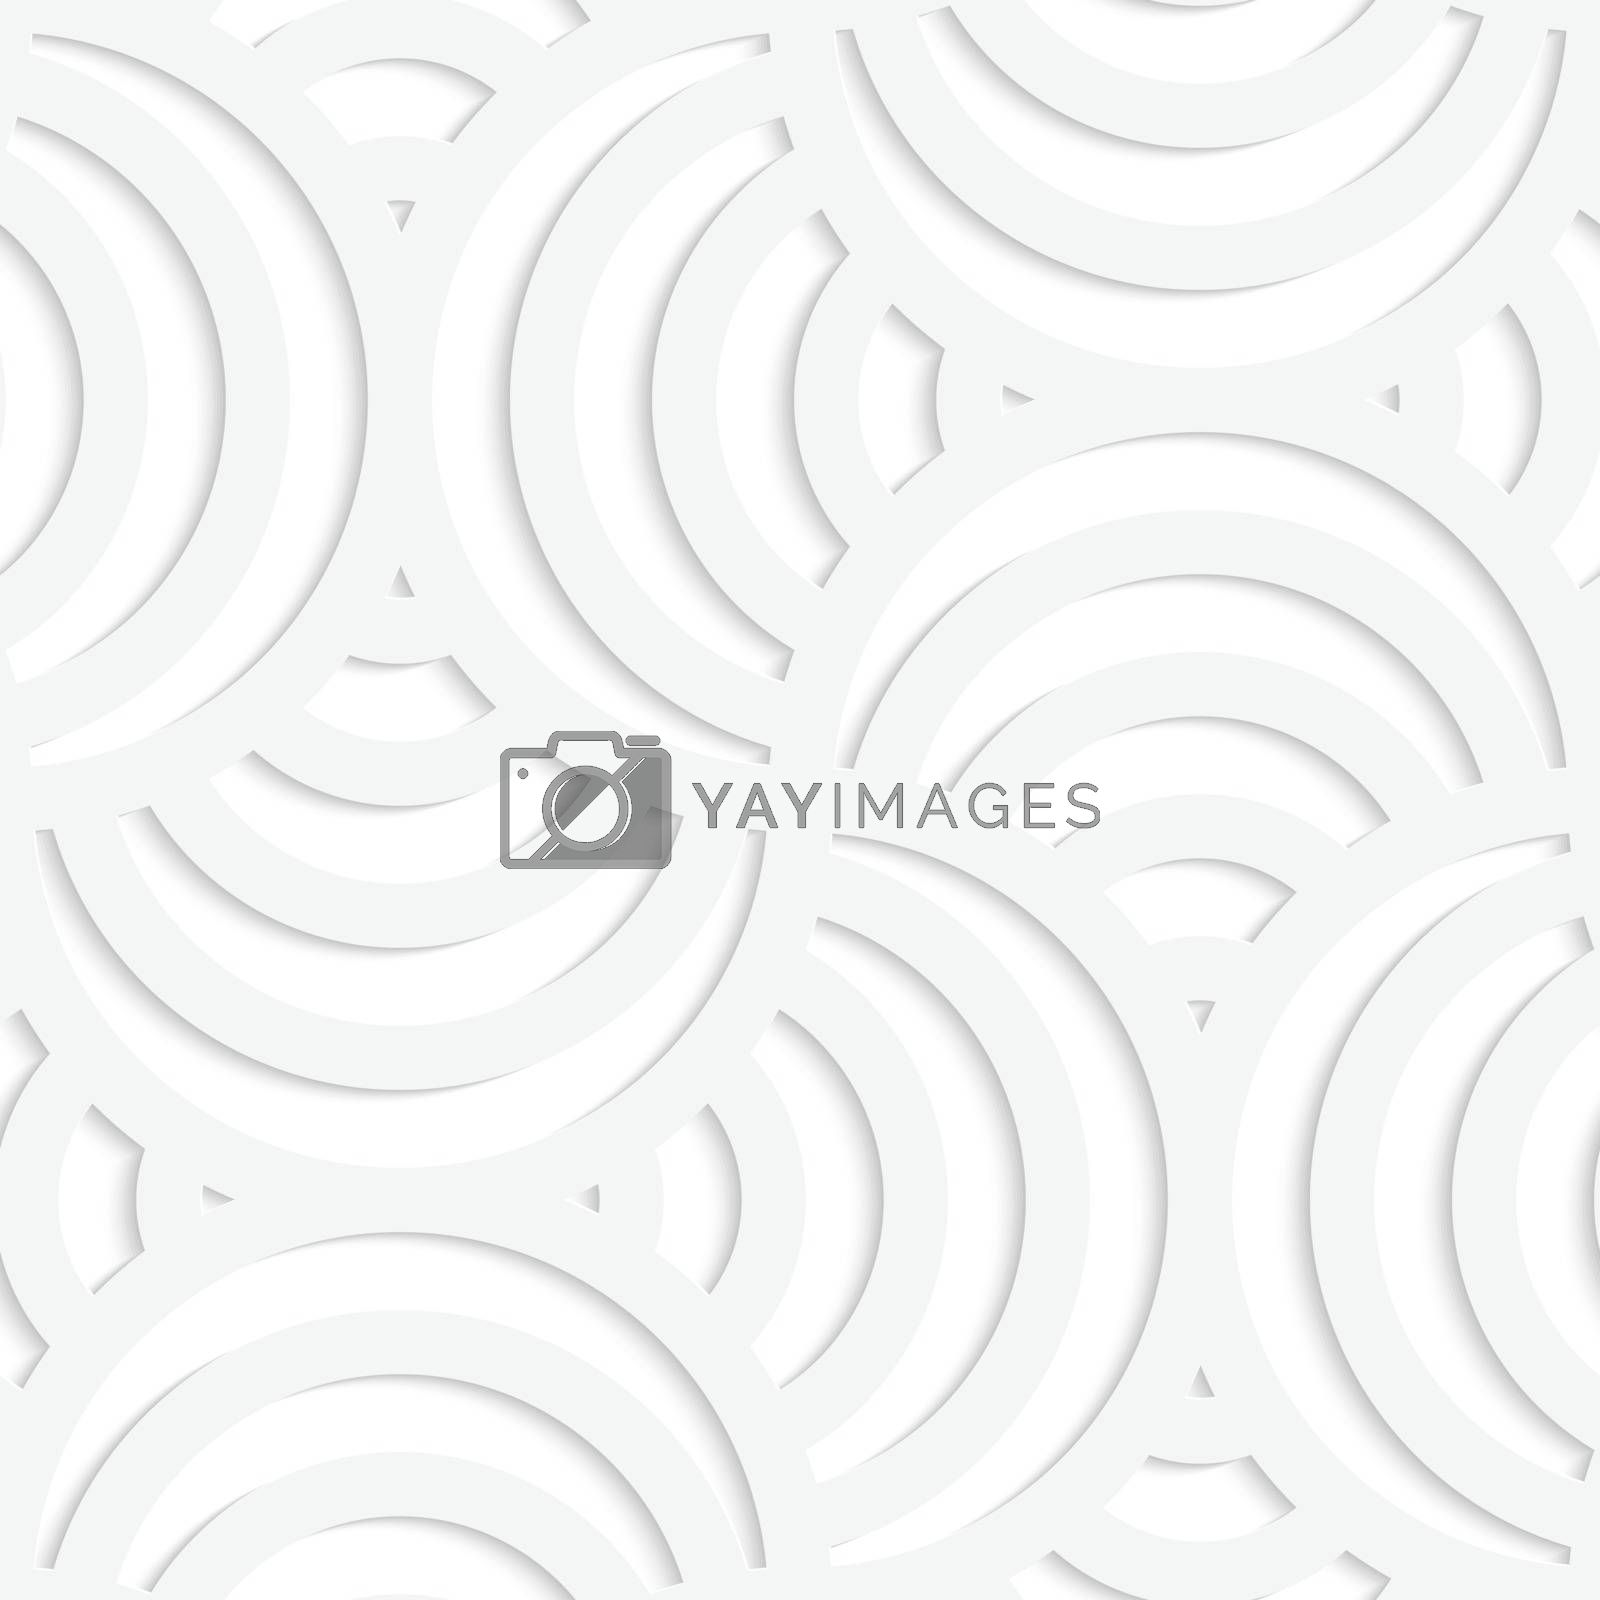 Paper white 3D geometric background. Seamless pattern with realistic shadow and cut out of paper effect.White paper 3D four stripes circle pin will.